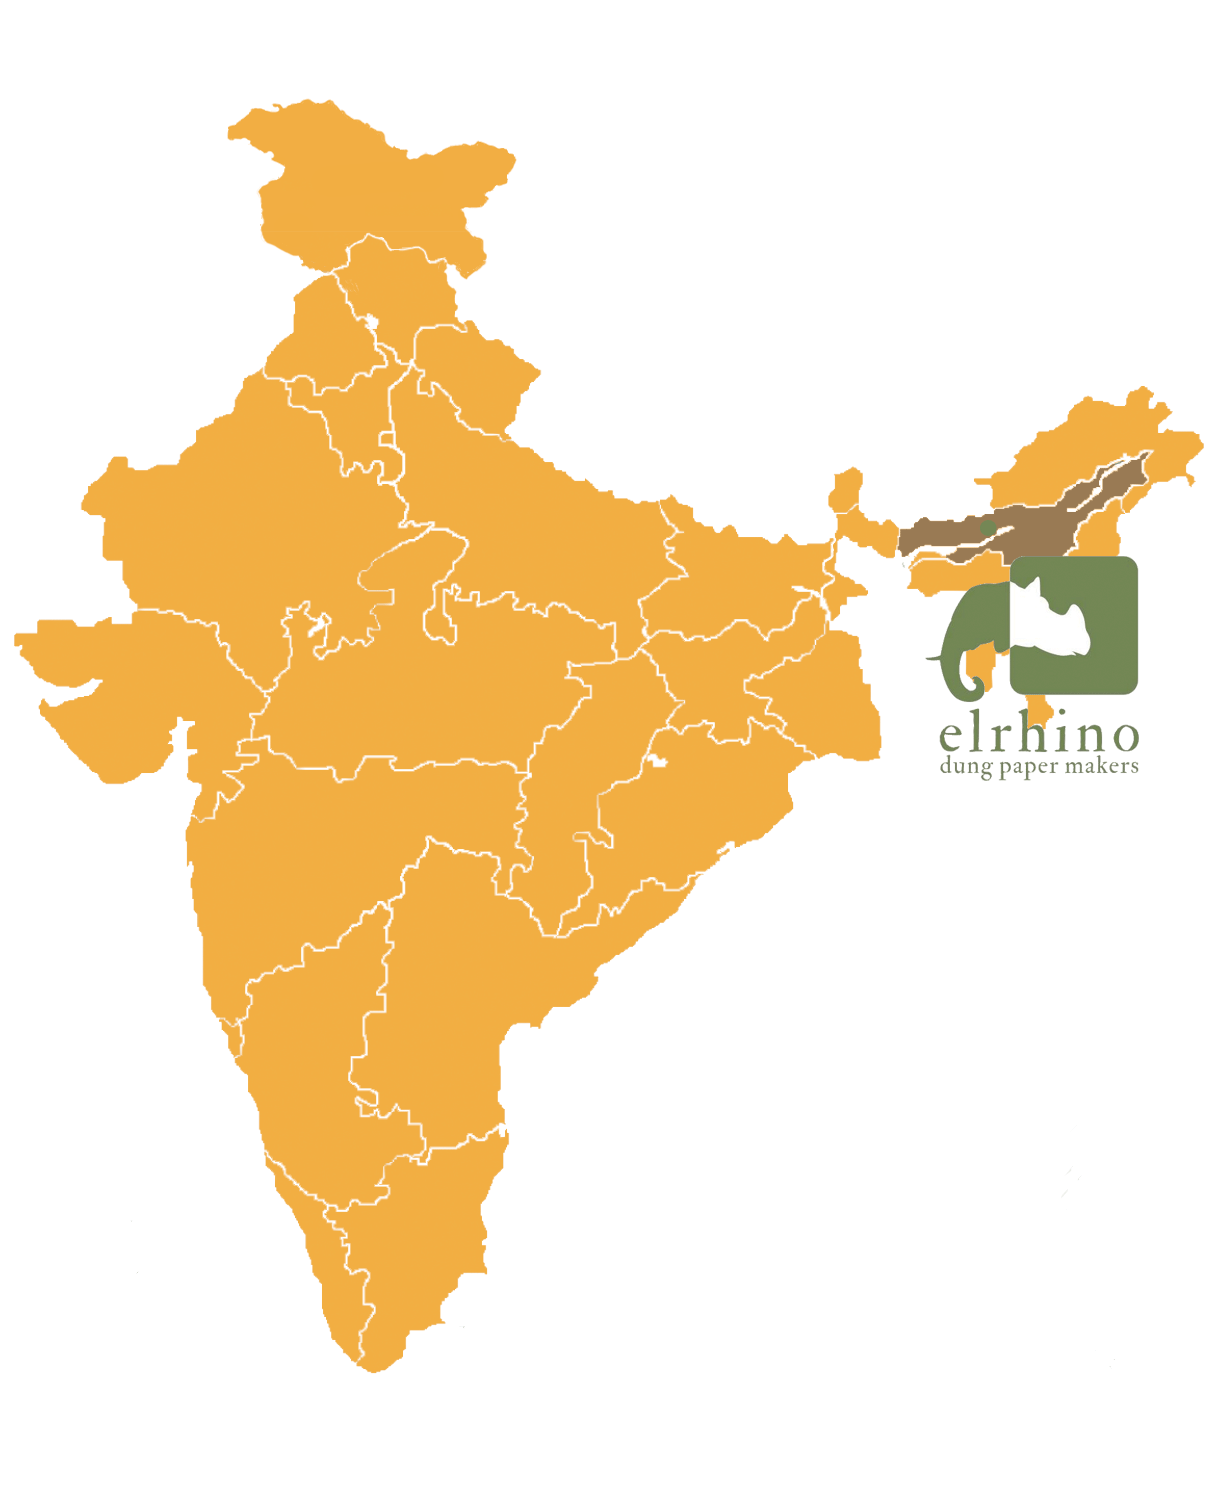 elrhino-map-with-logo.png